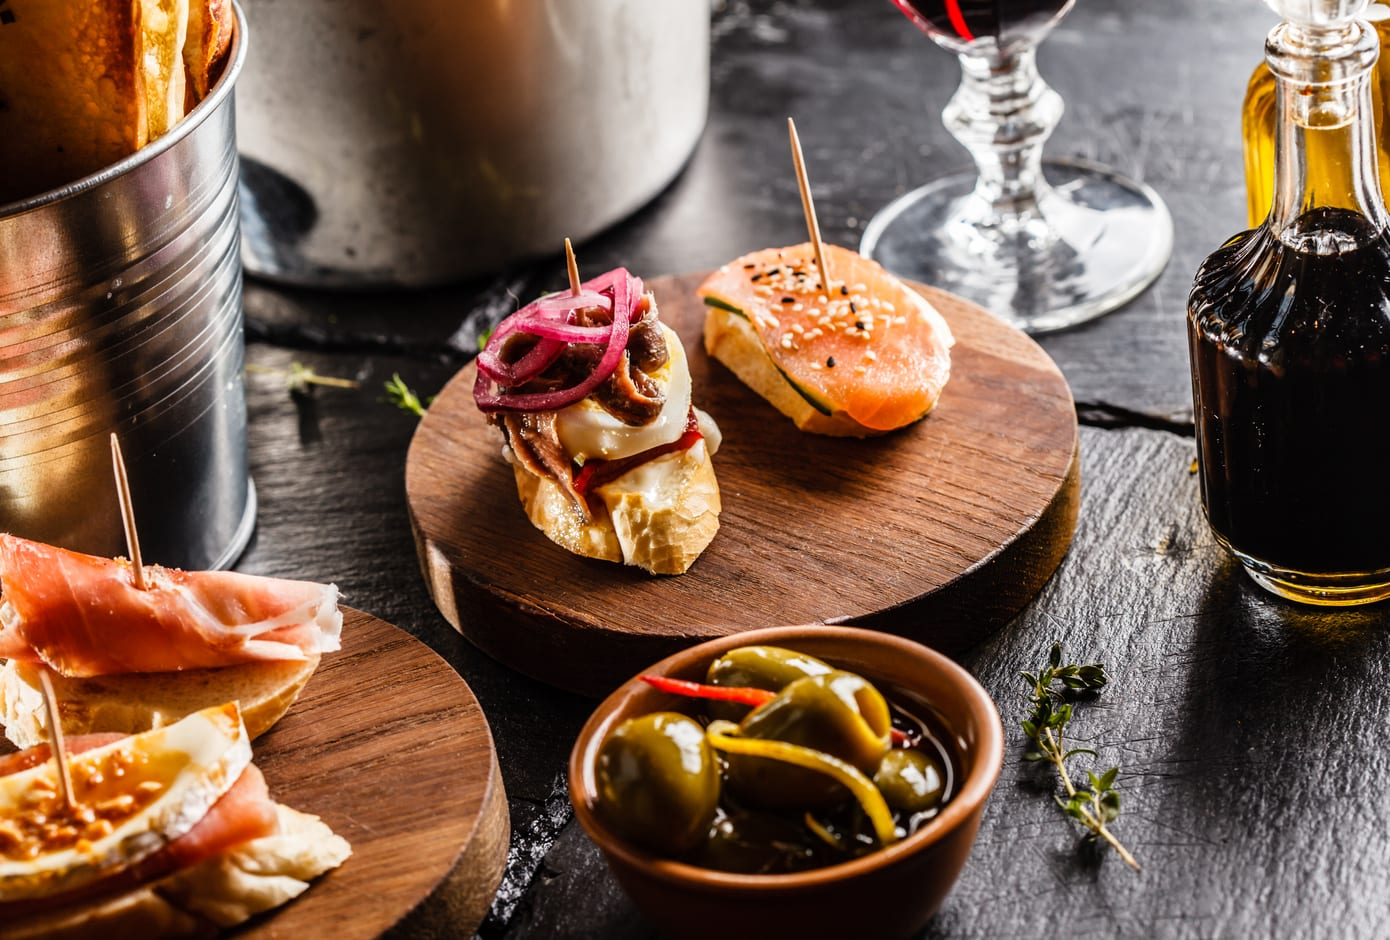 Spanish dinner with a variety of tapas.